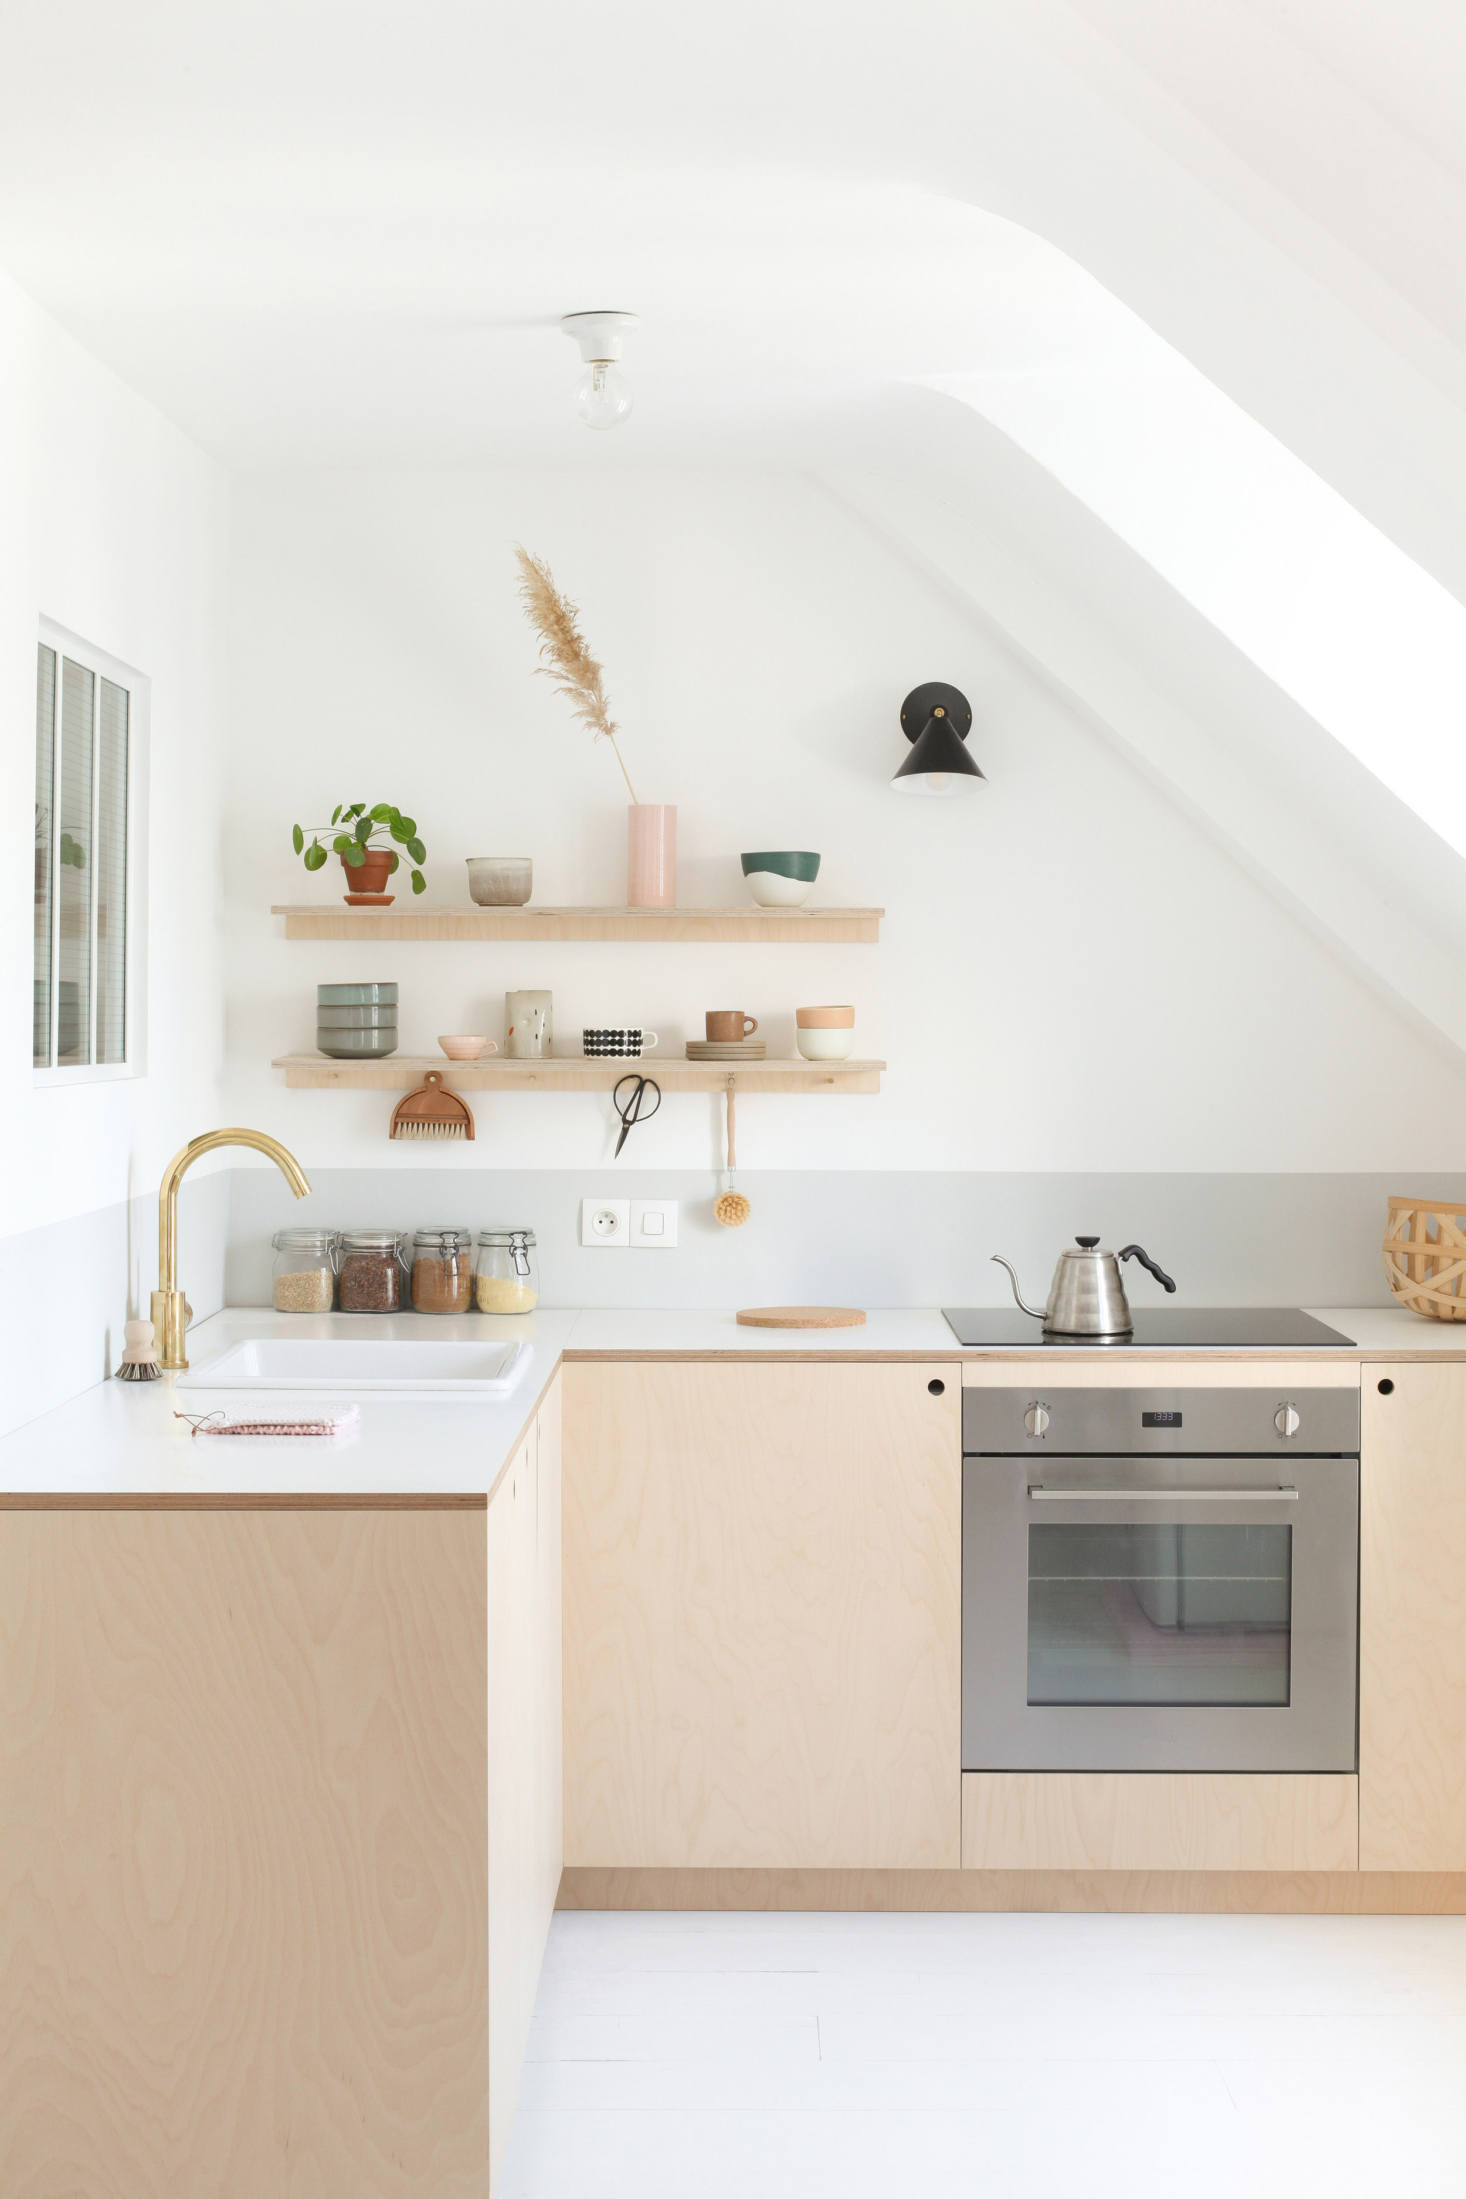 Steal This Look: The $4K Parisian Kitchen from Two DIY Experts